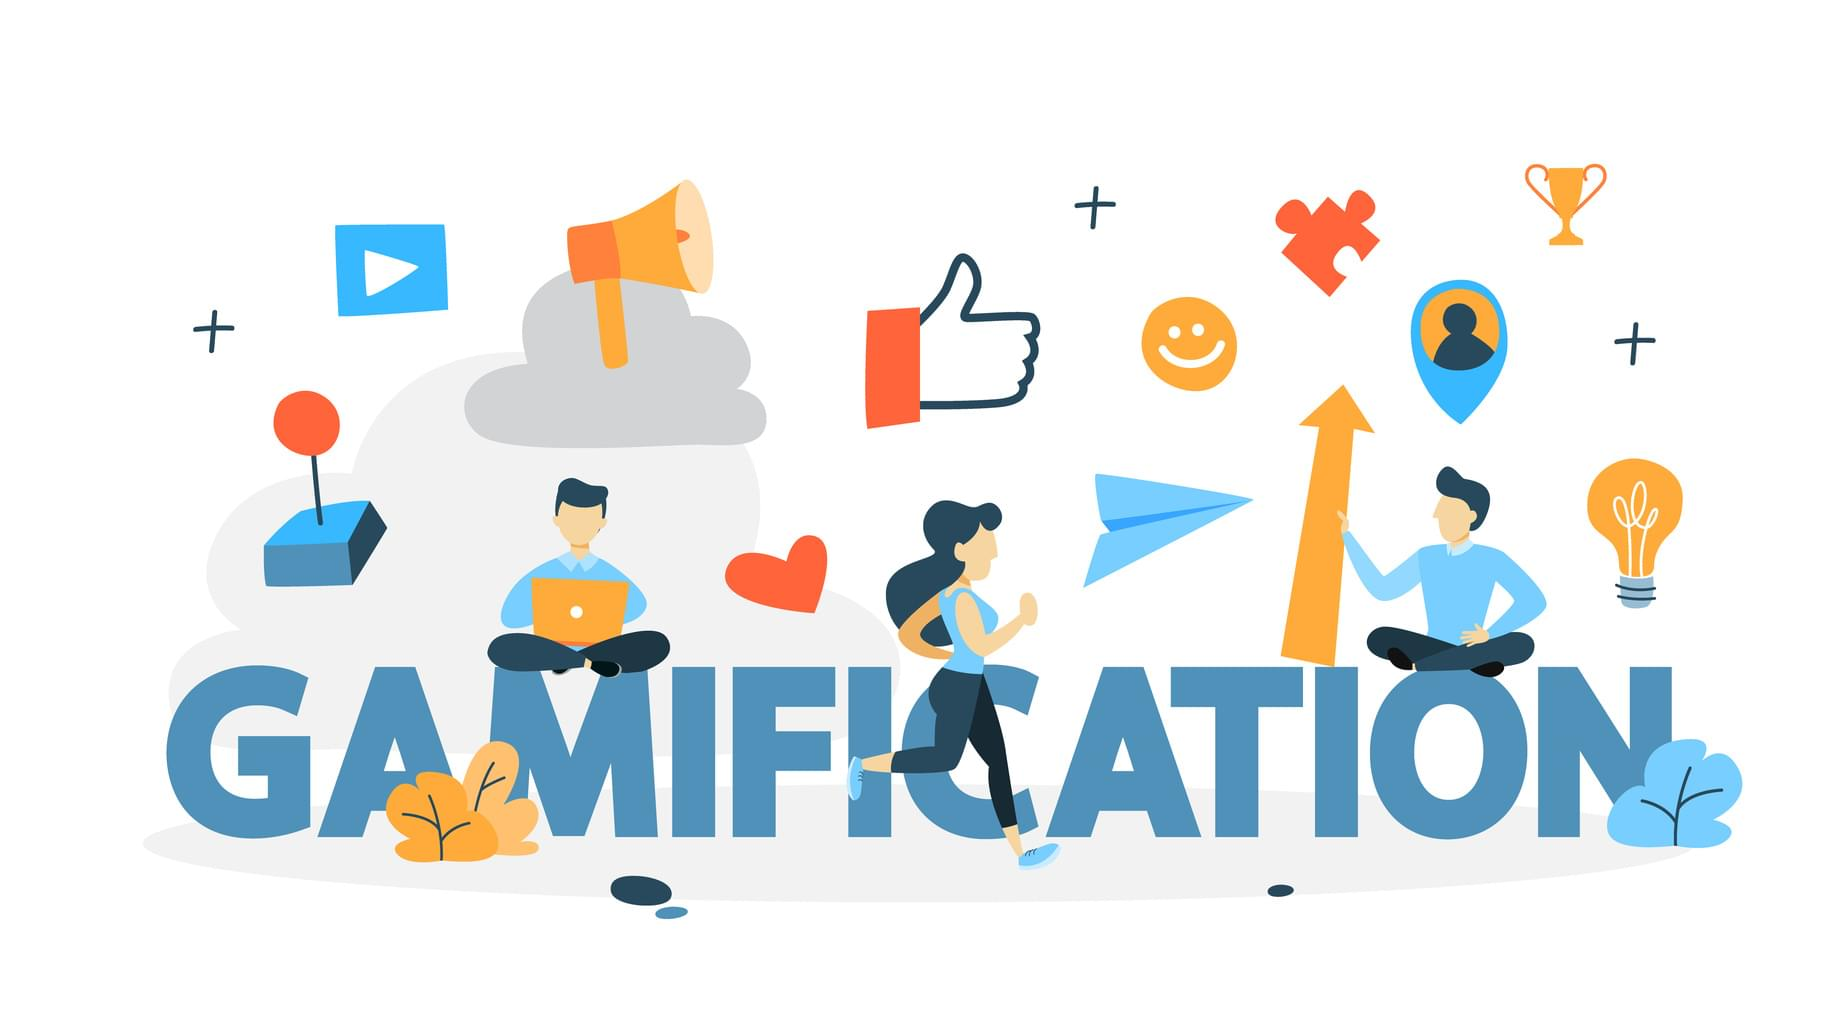 HOW GAMIFICATION CAN IMPROVE LEARNING SKILLS